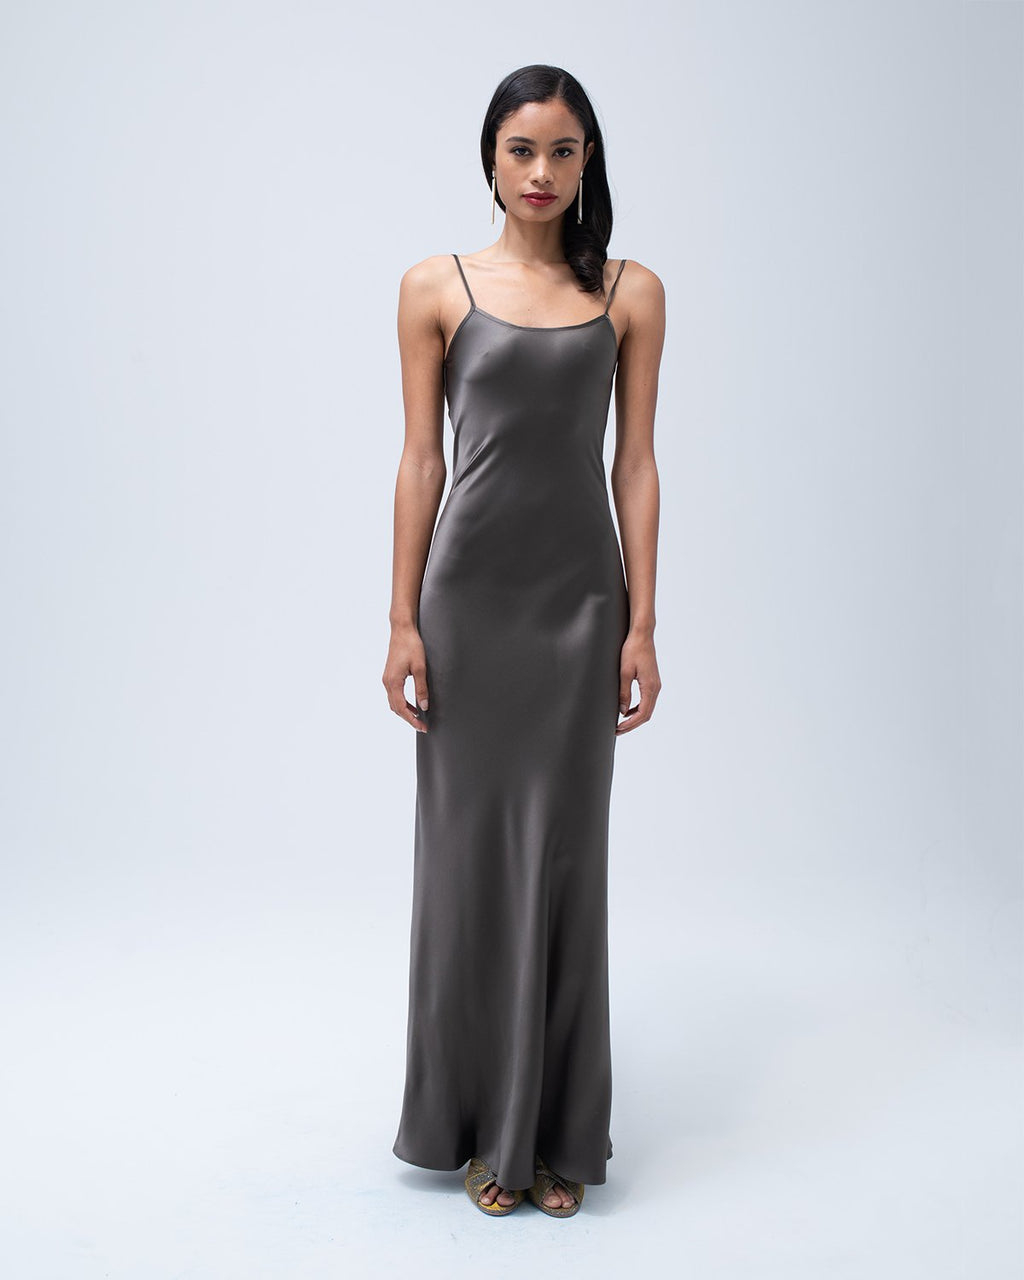 Liquid Slip Dress - Mink